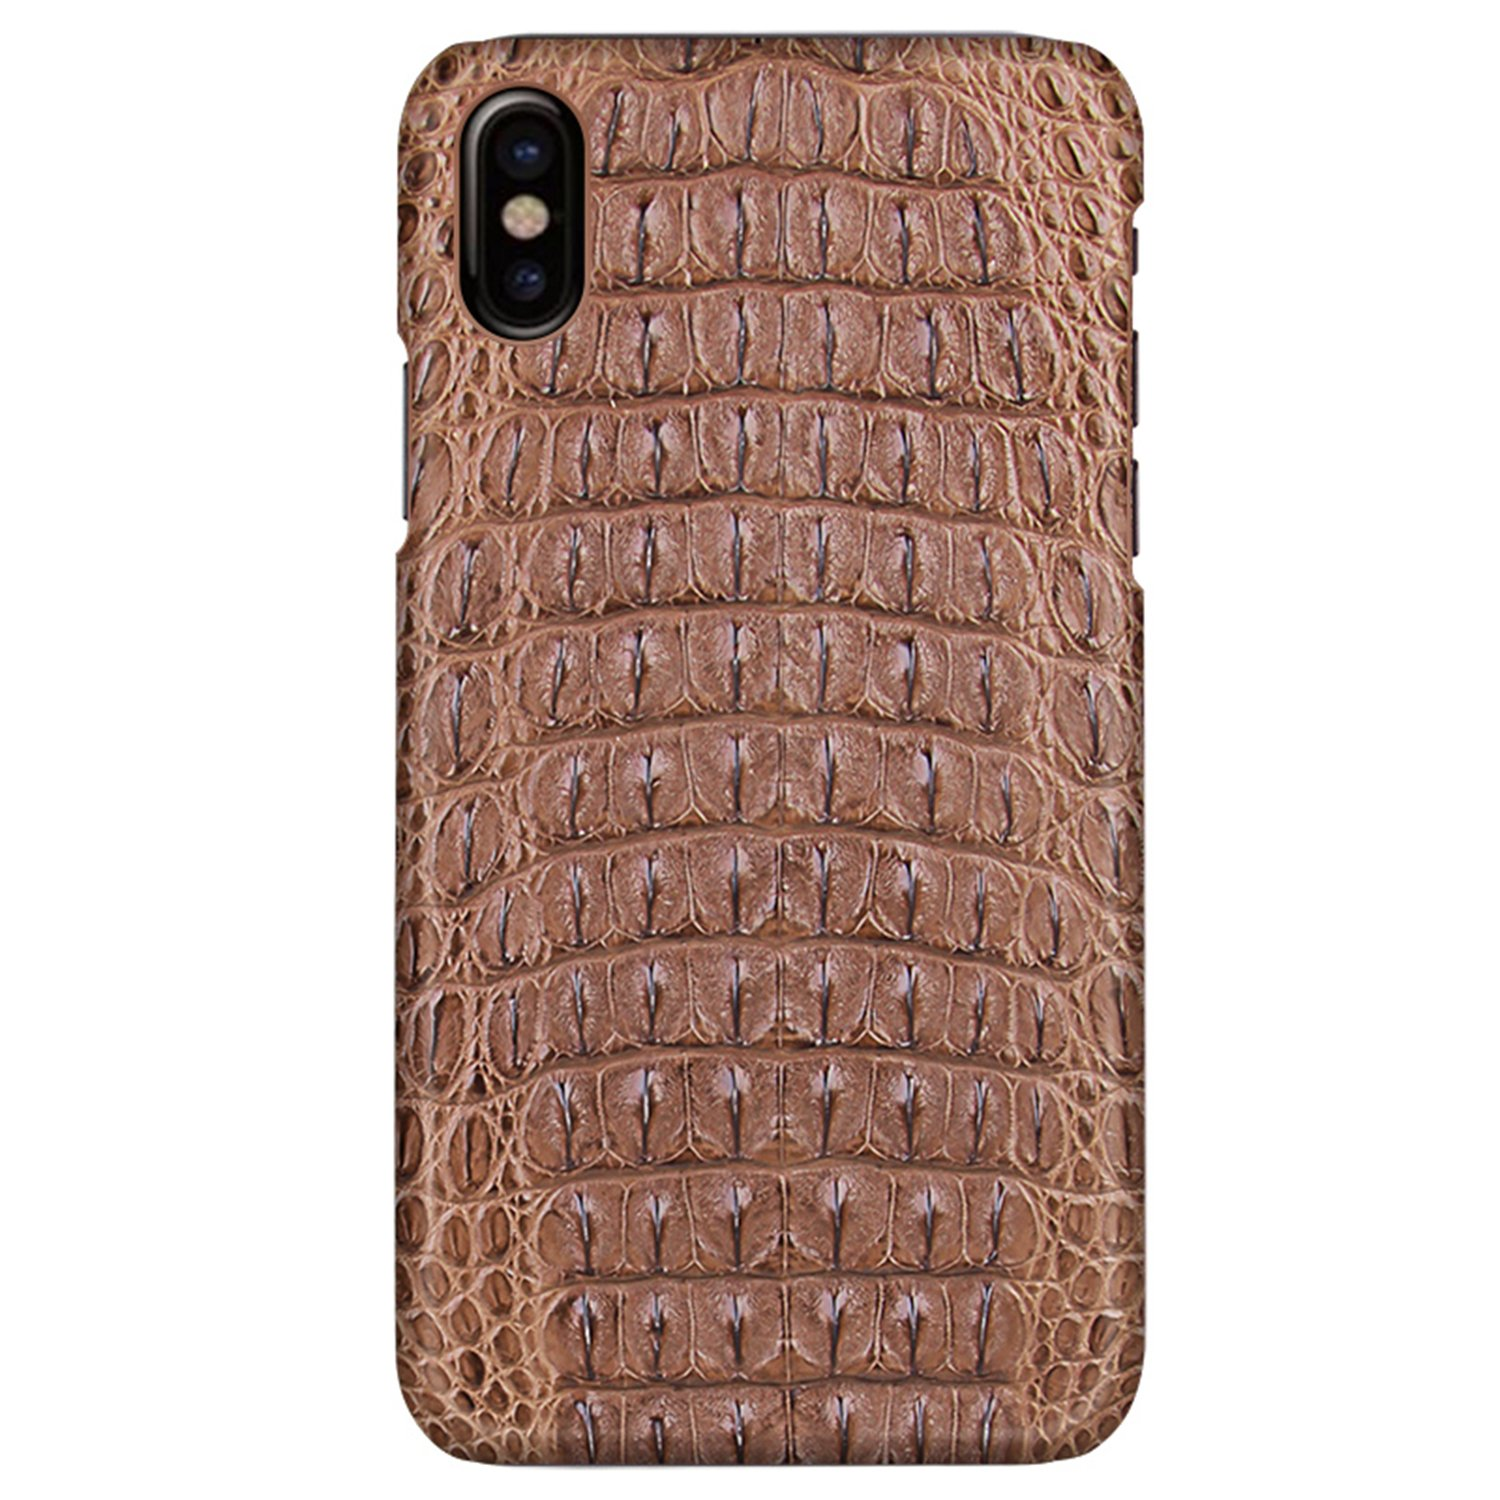 UU&T Luxury Case Classic Crocodile Leather Lightweight Hardshell Back Case for iPhone X 5.8 Inch (Brown)